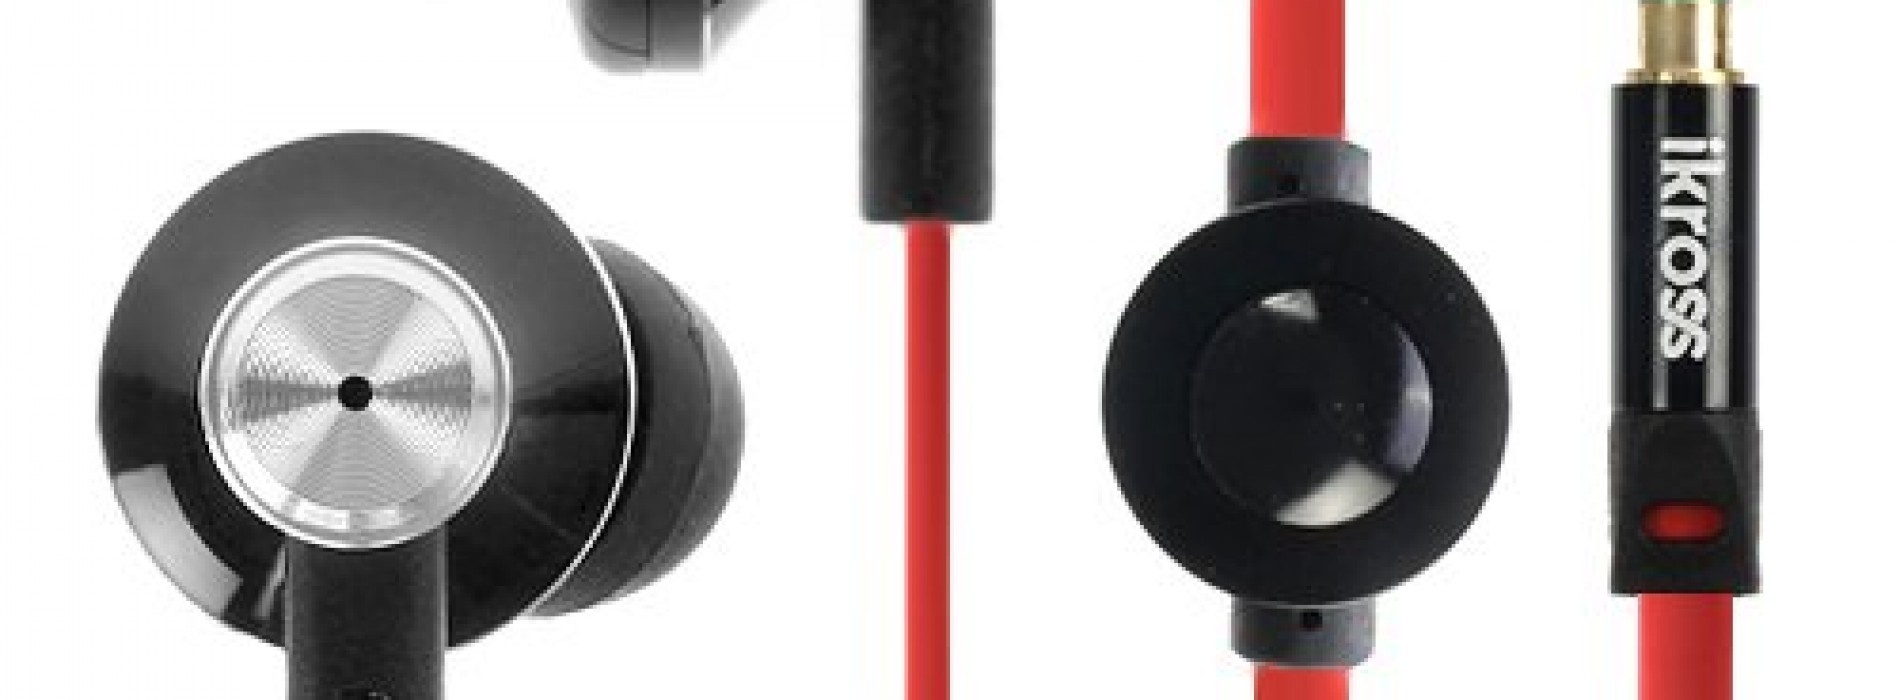 Accessory of the Day: iKross 3.5mm Stereo Earbuds with Microphone